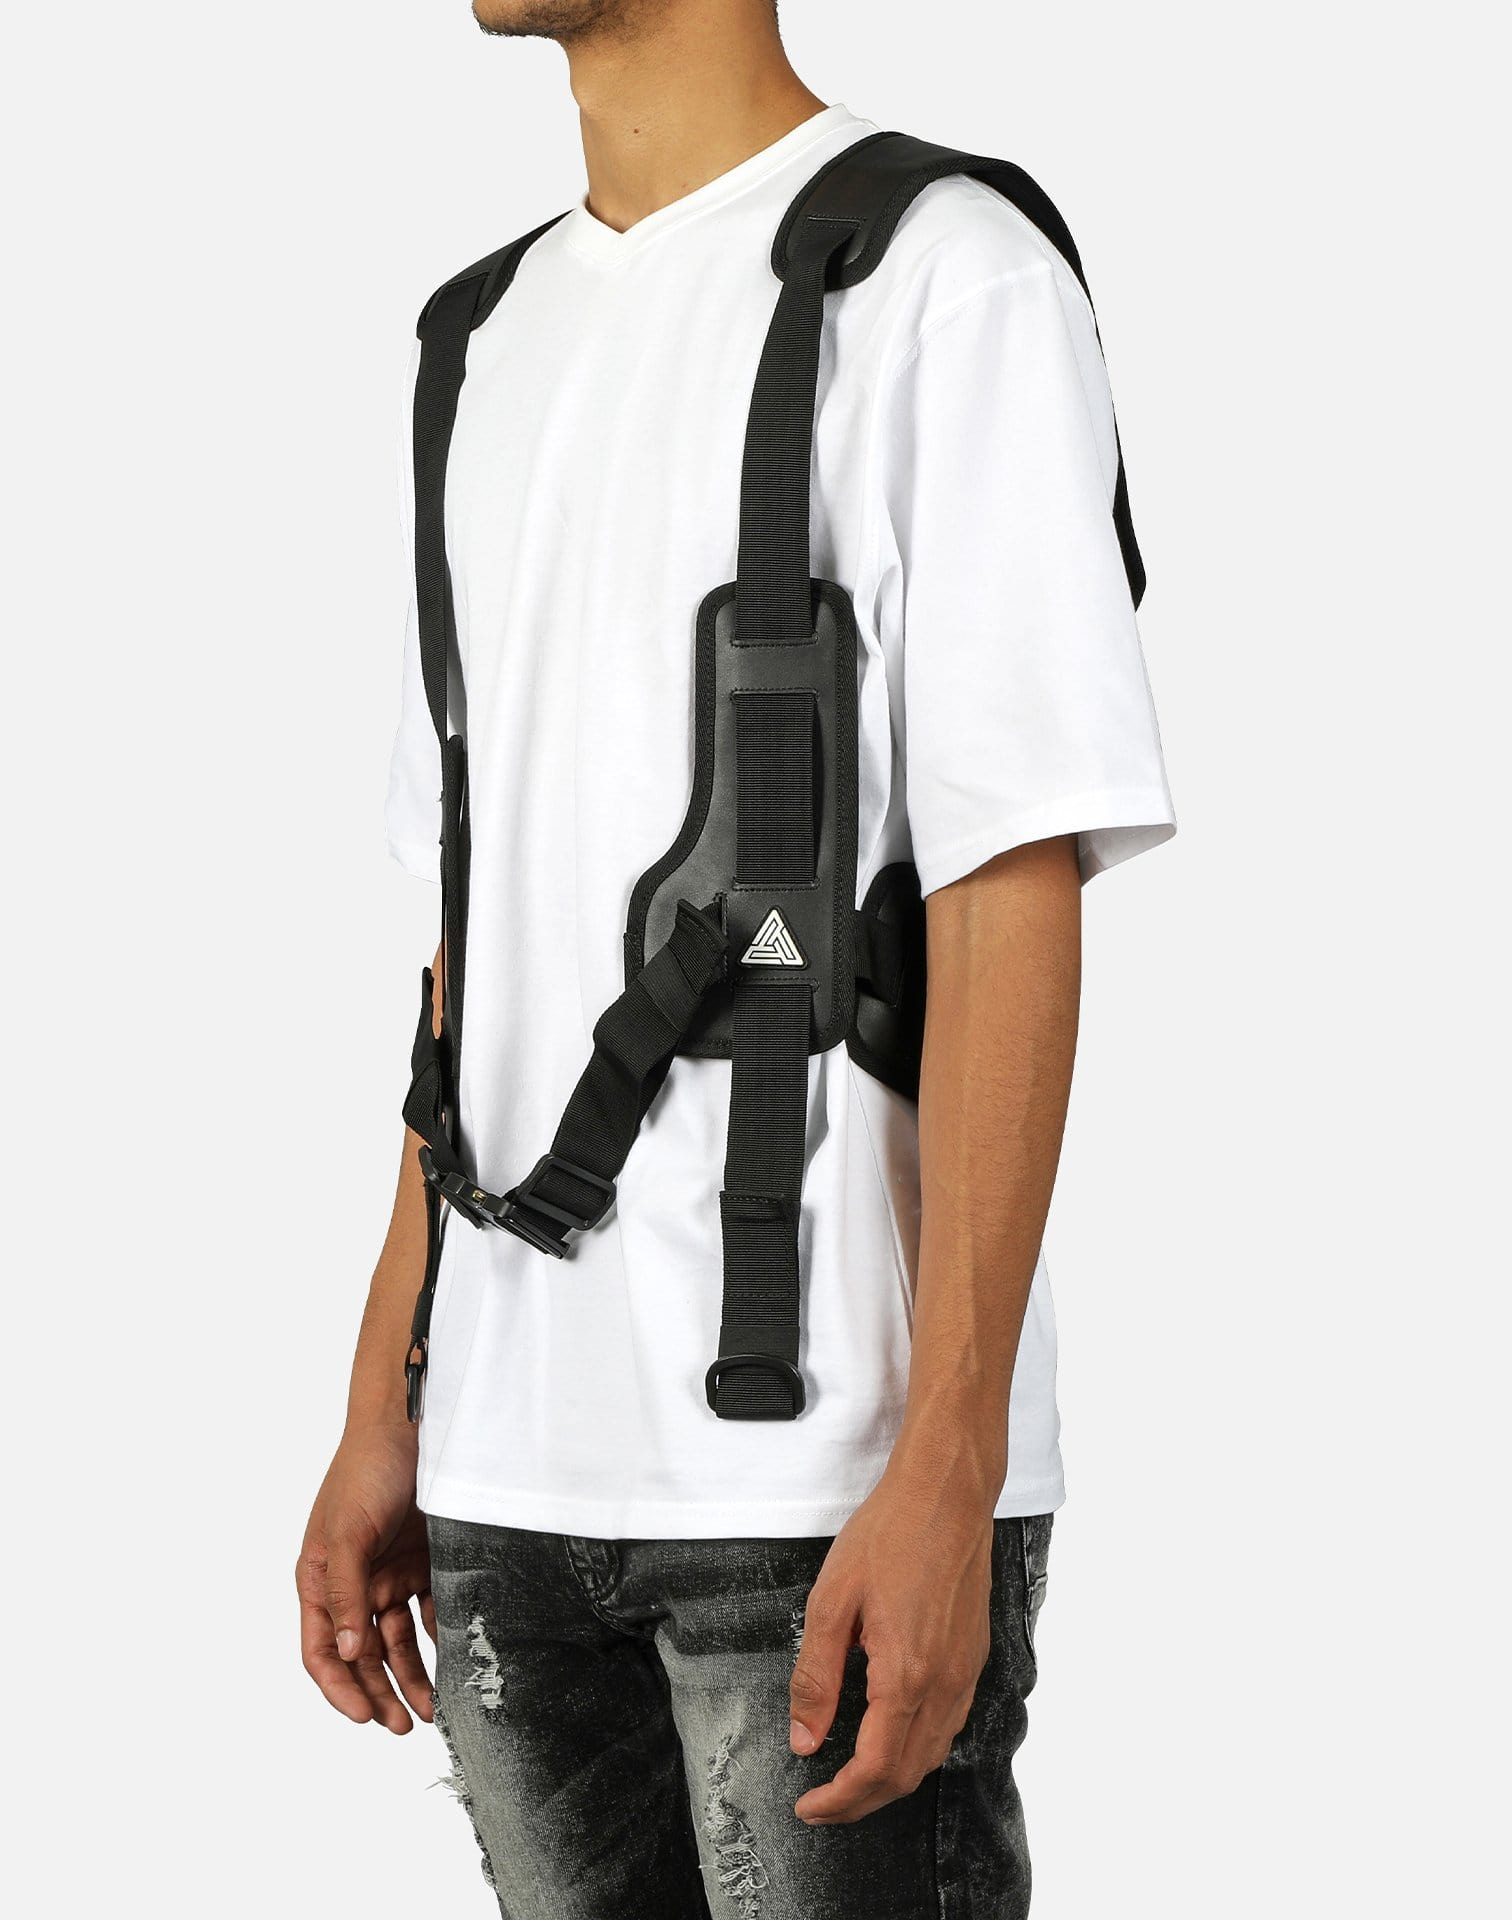 PYRAMID CHEST RIG VEST